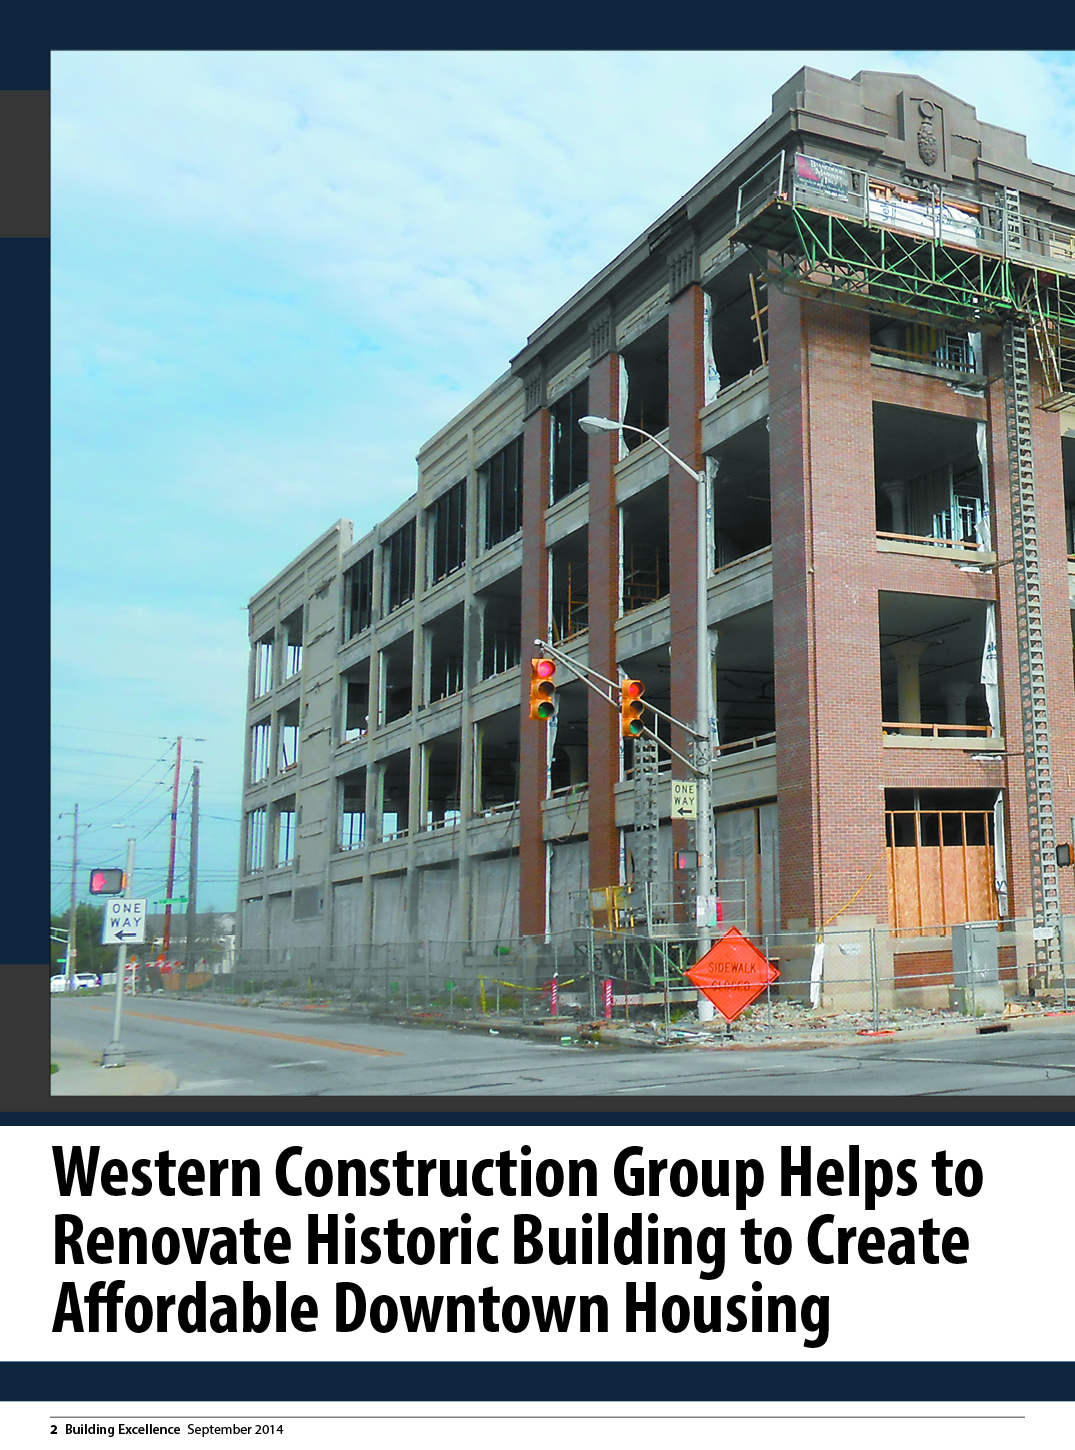 Western Construction Group Completes Historic Renovation for 800 North Capitol Apartments2